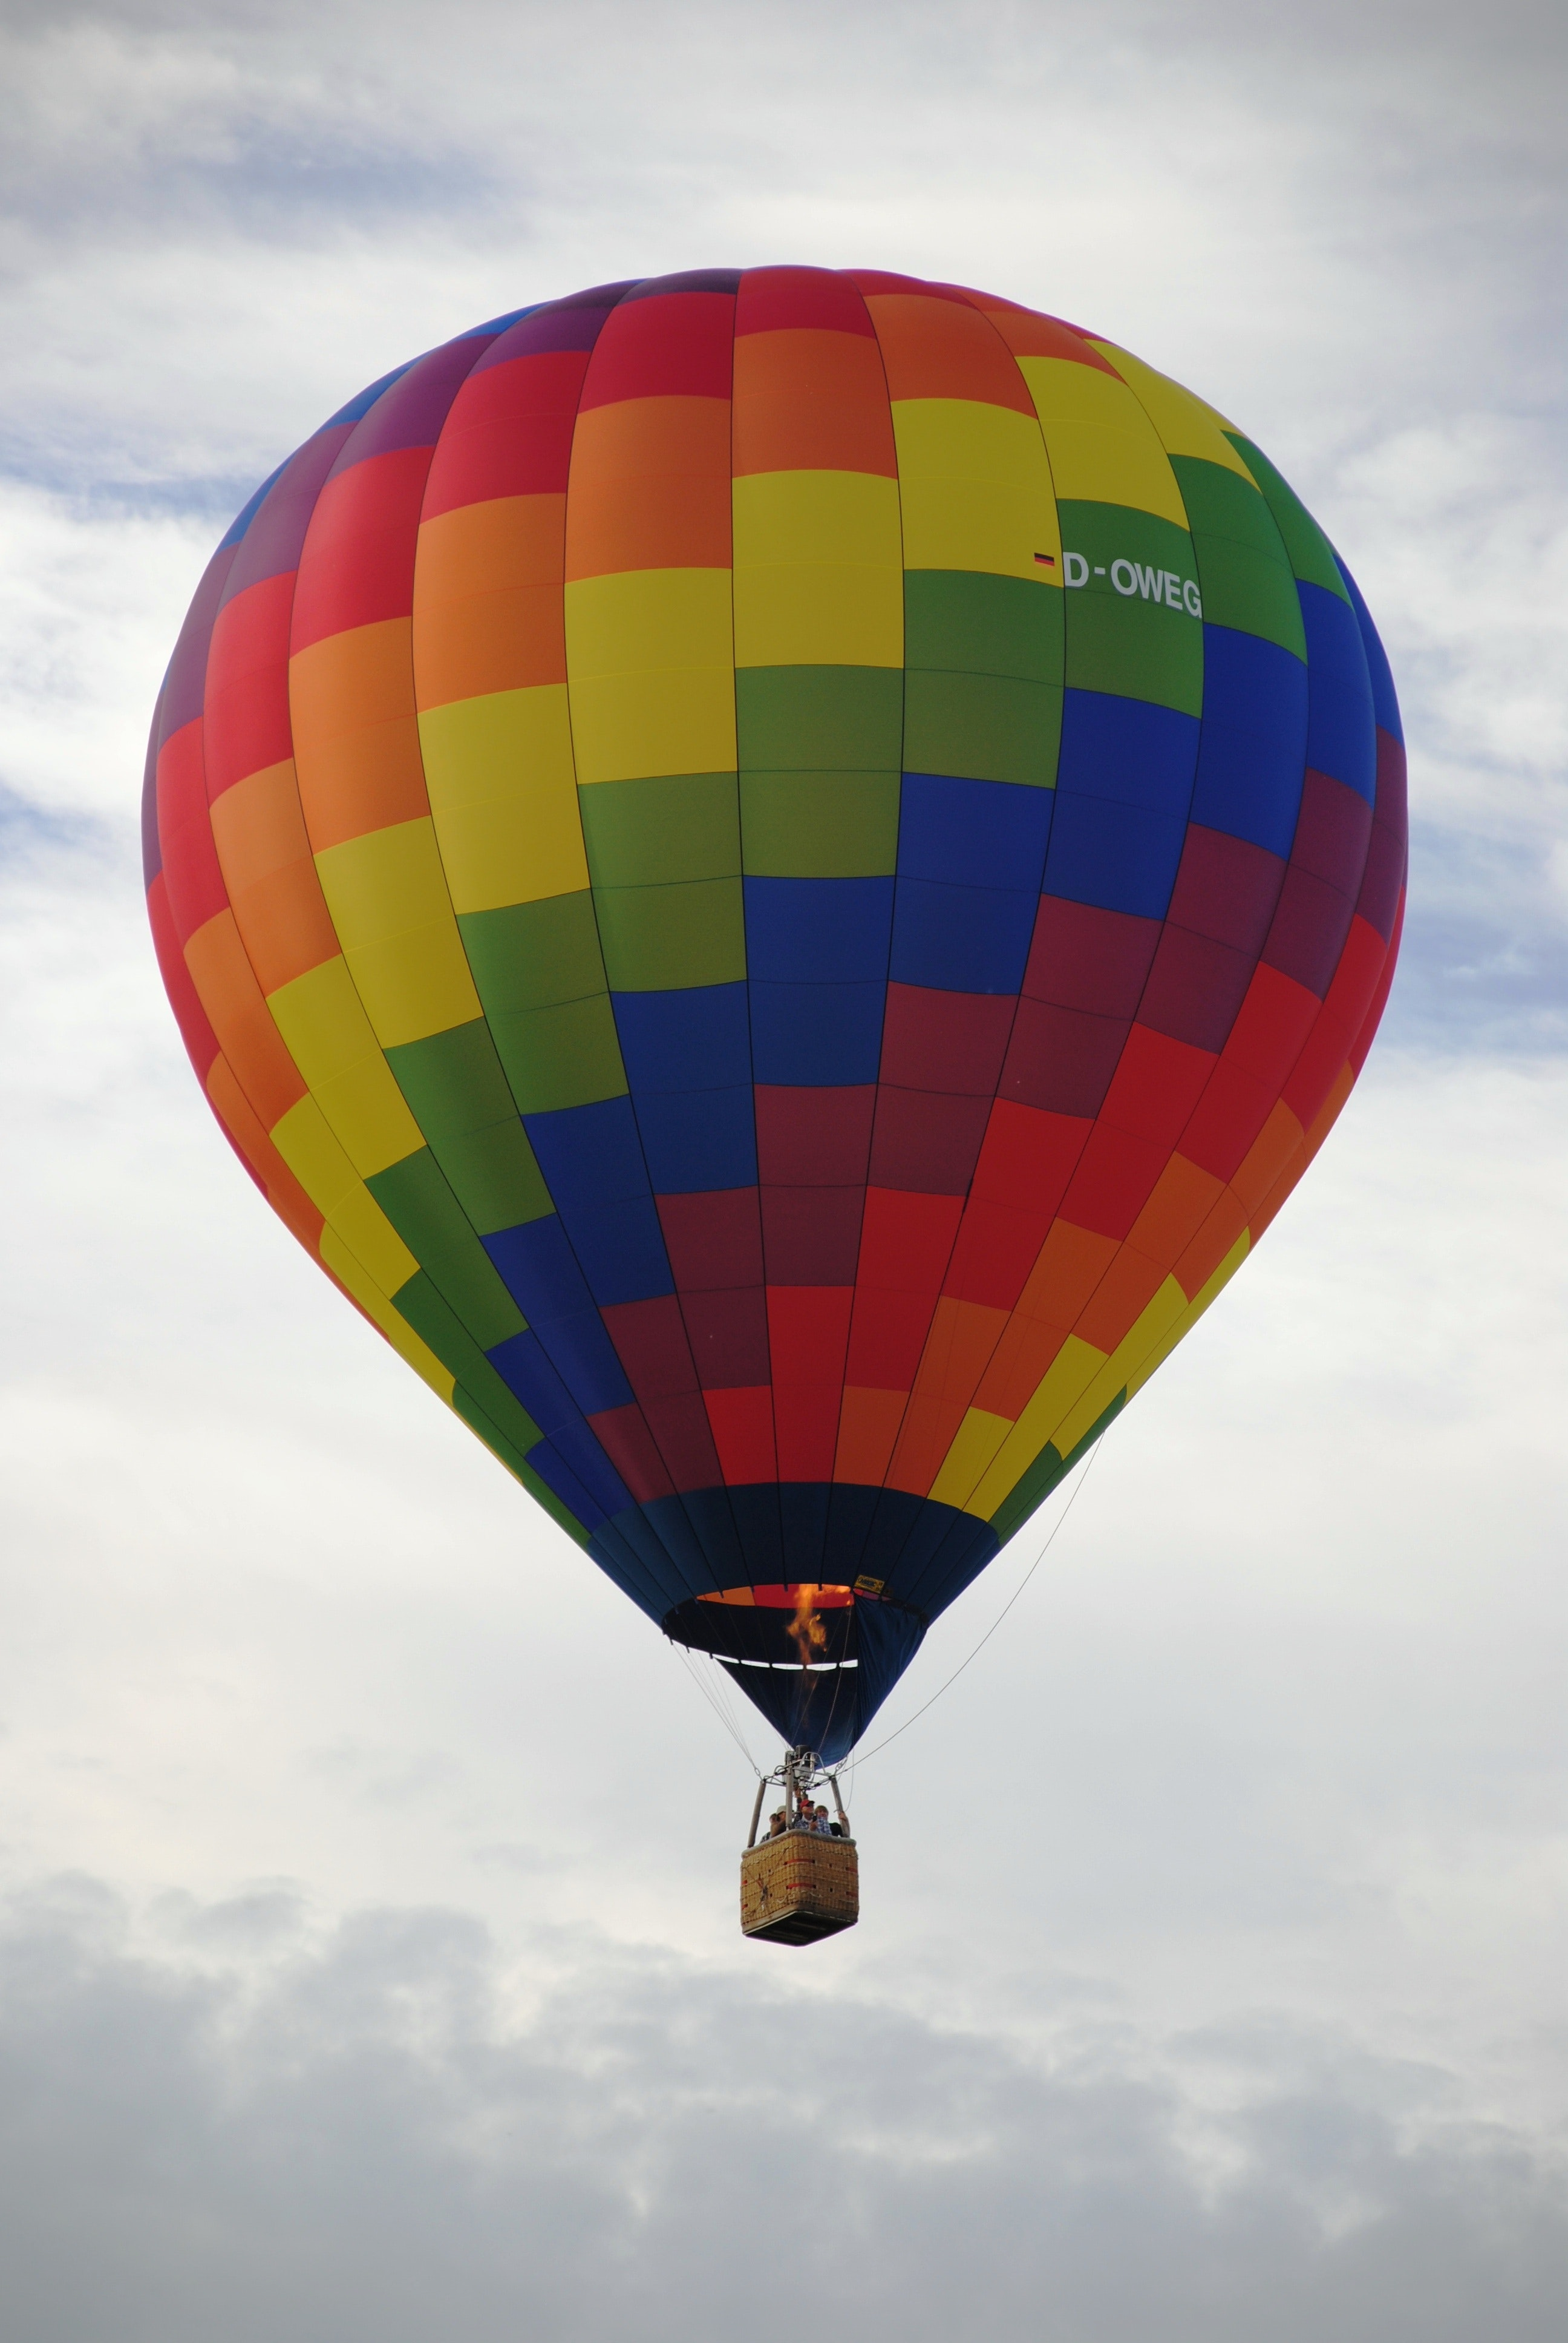 Multi Colored Hot Air Balloon S Grown Shot During Daytime